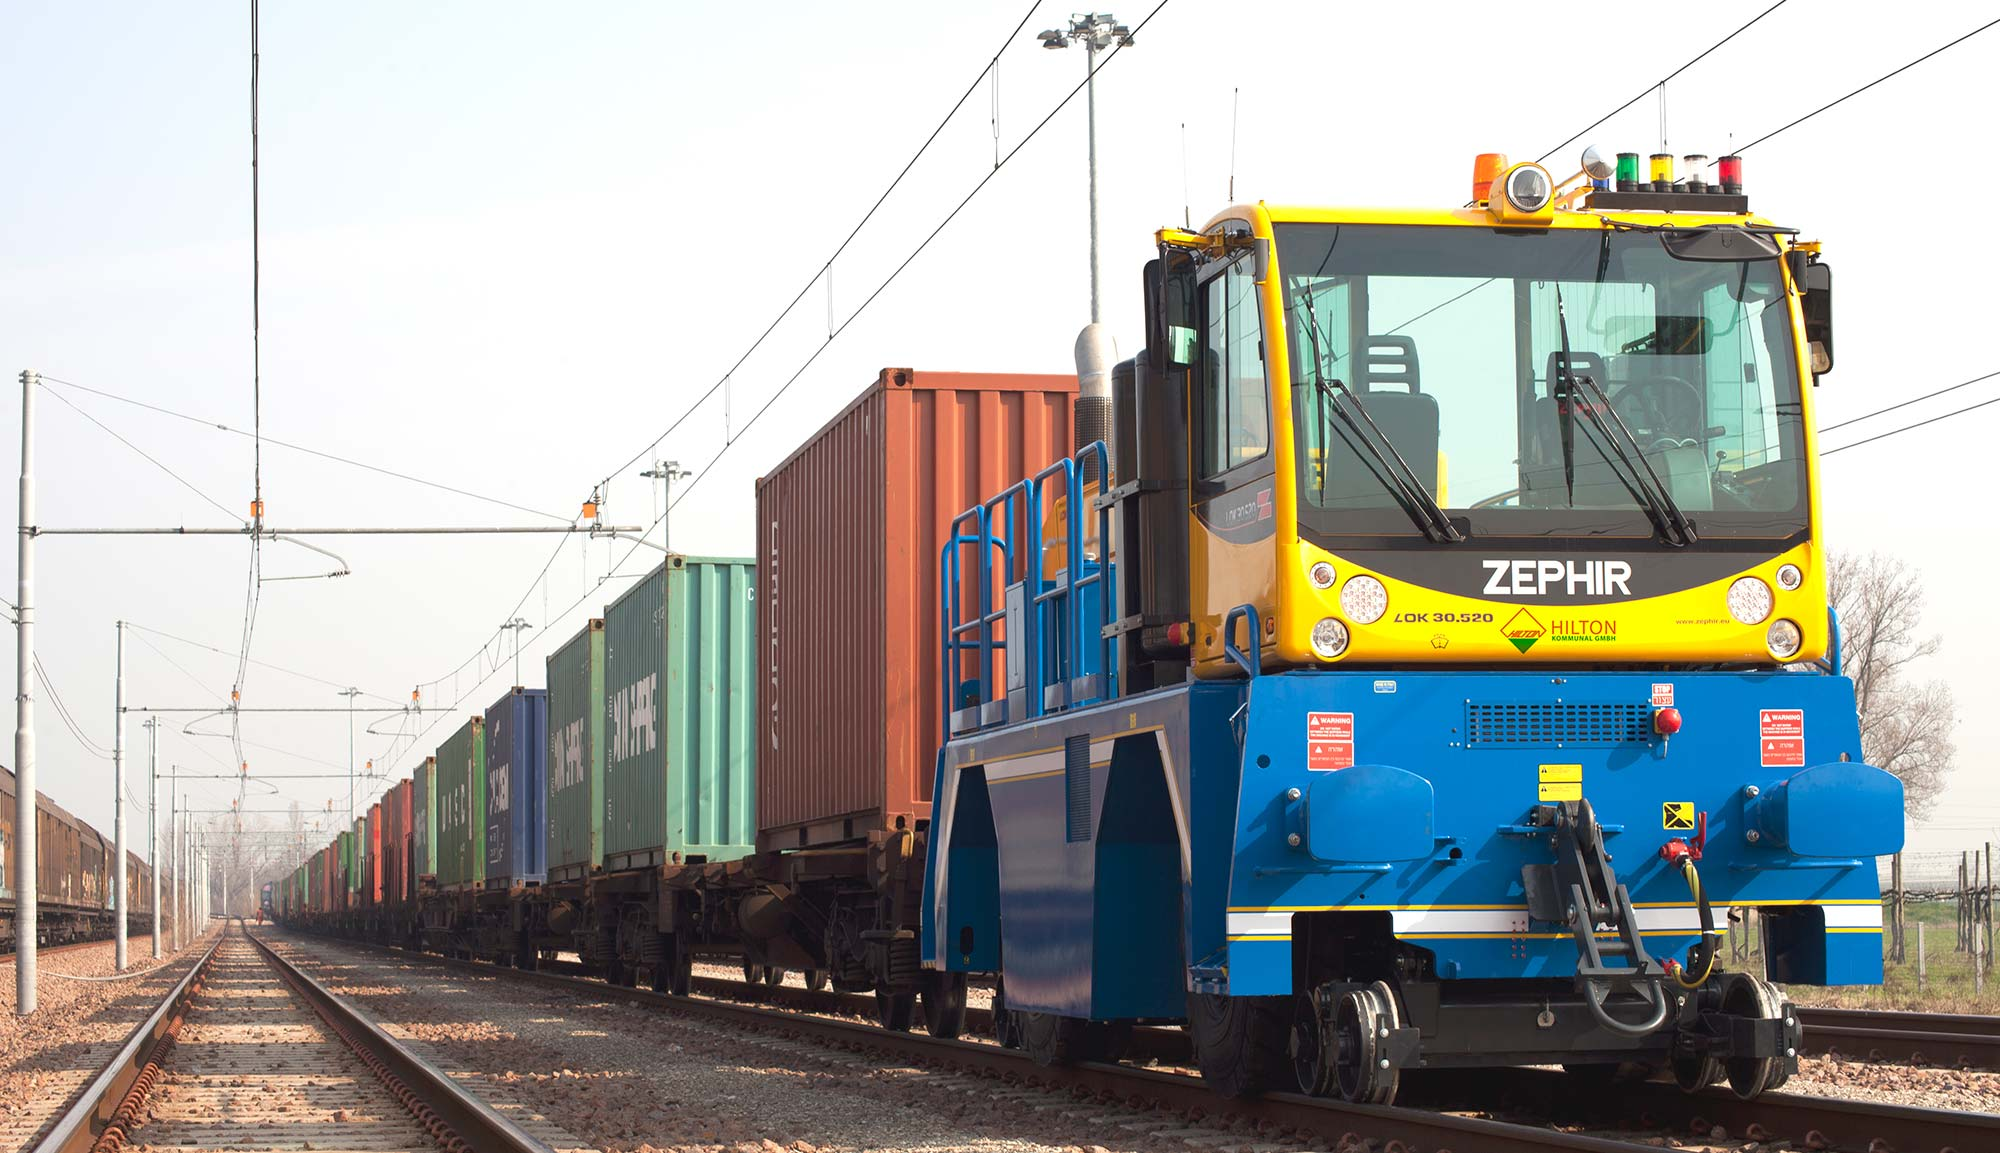 Zephir Shunting Vehicles